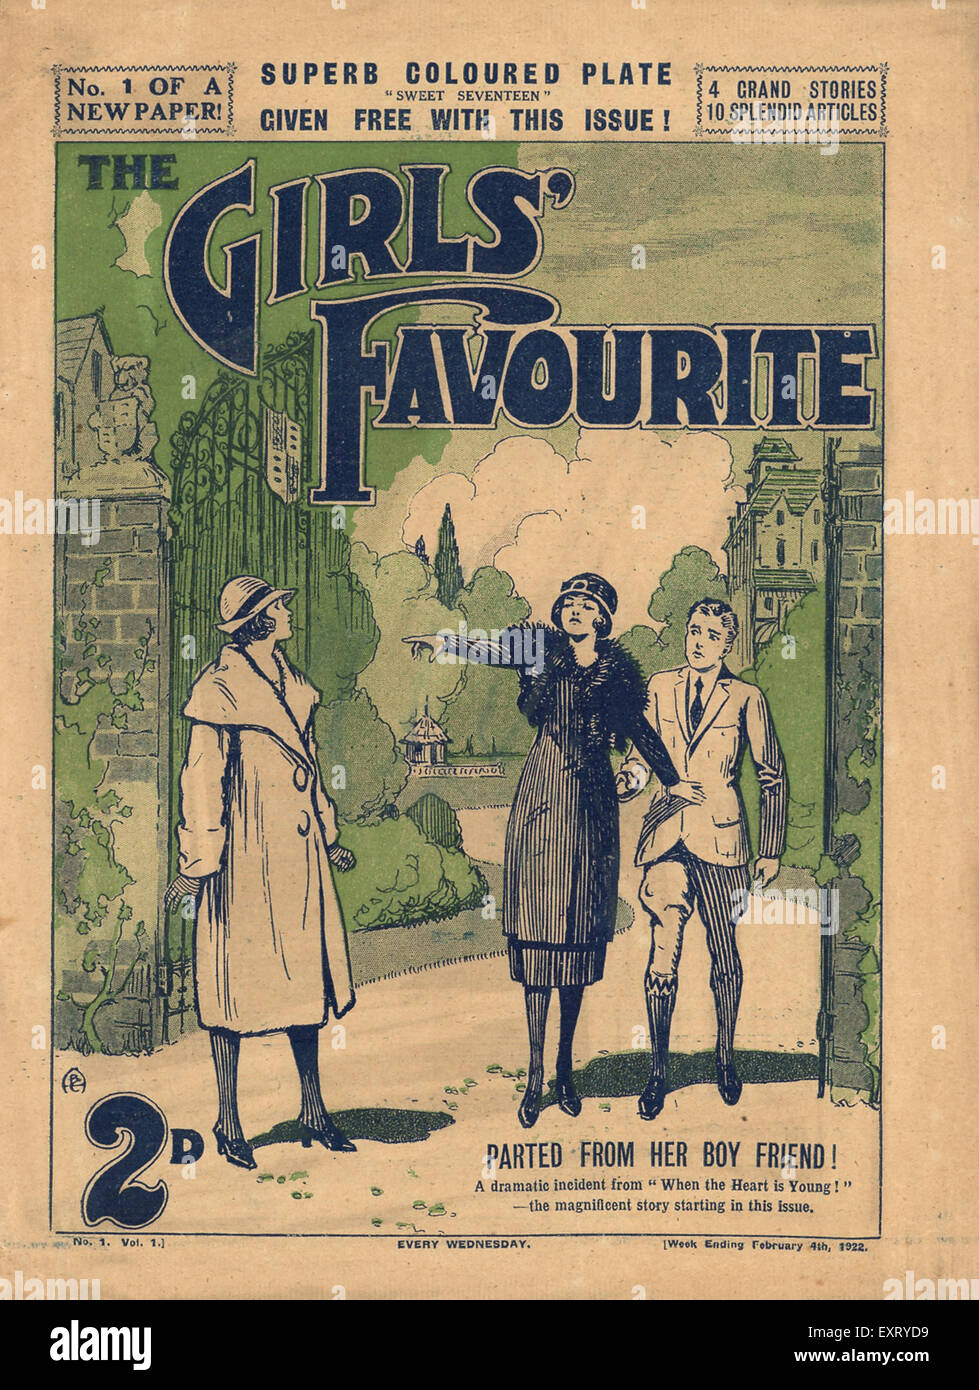 1920s UK The Girls' Favourite Magazine Cover - Stock Image